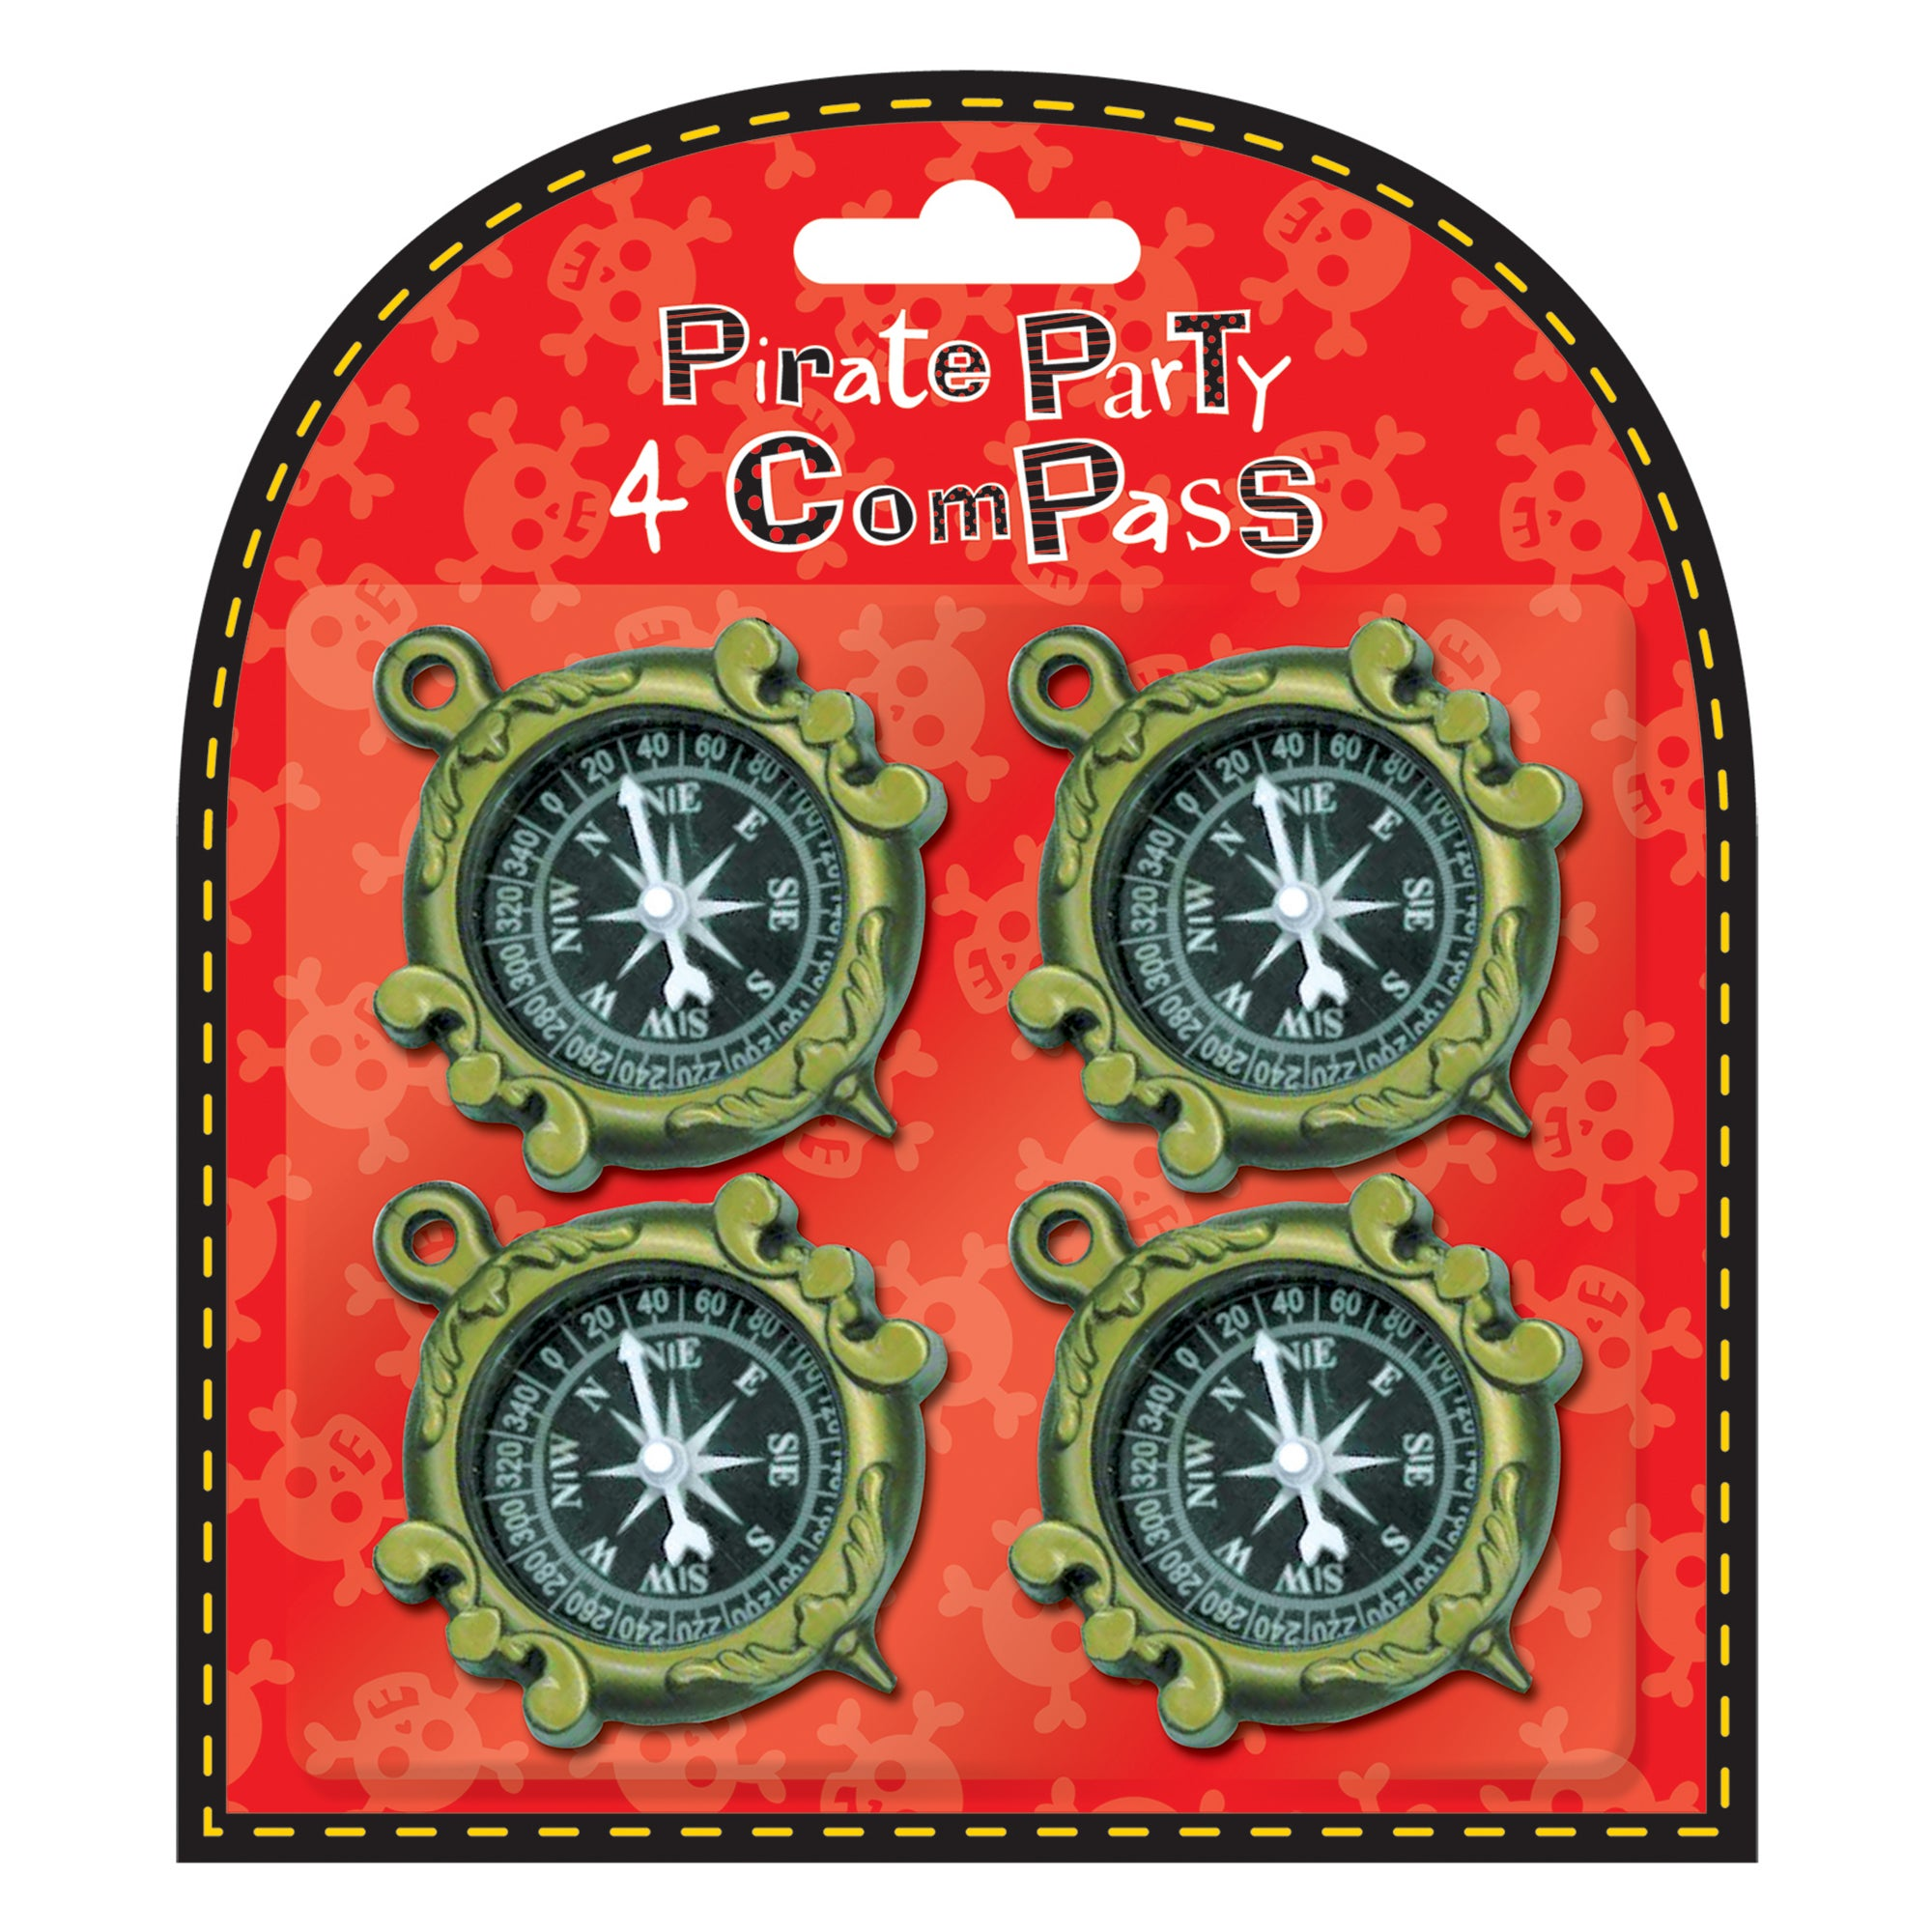 Pack of 4 Pirate Party Compasses